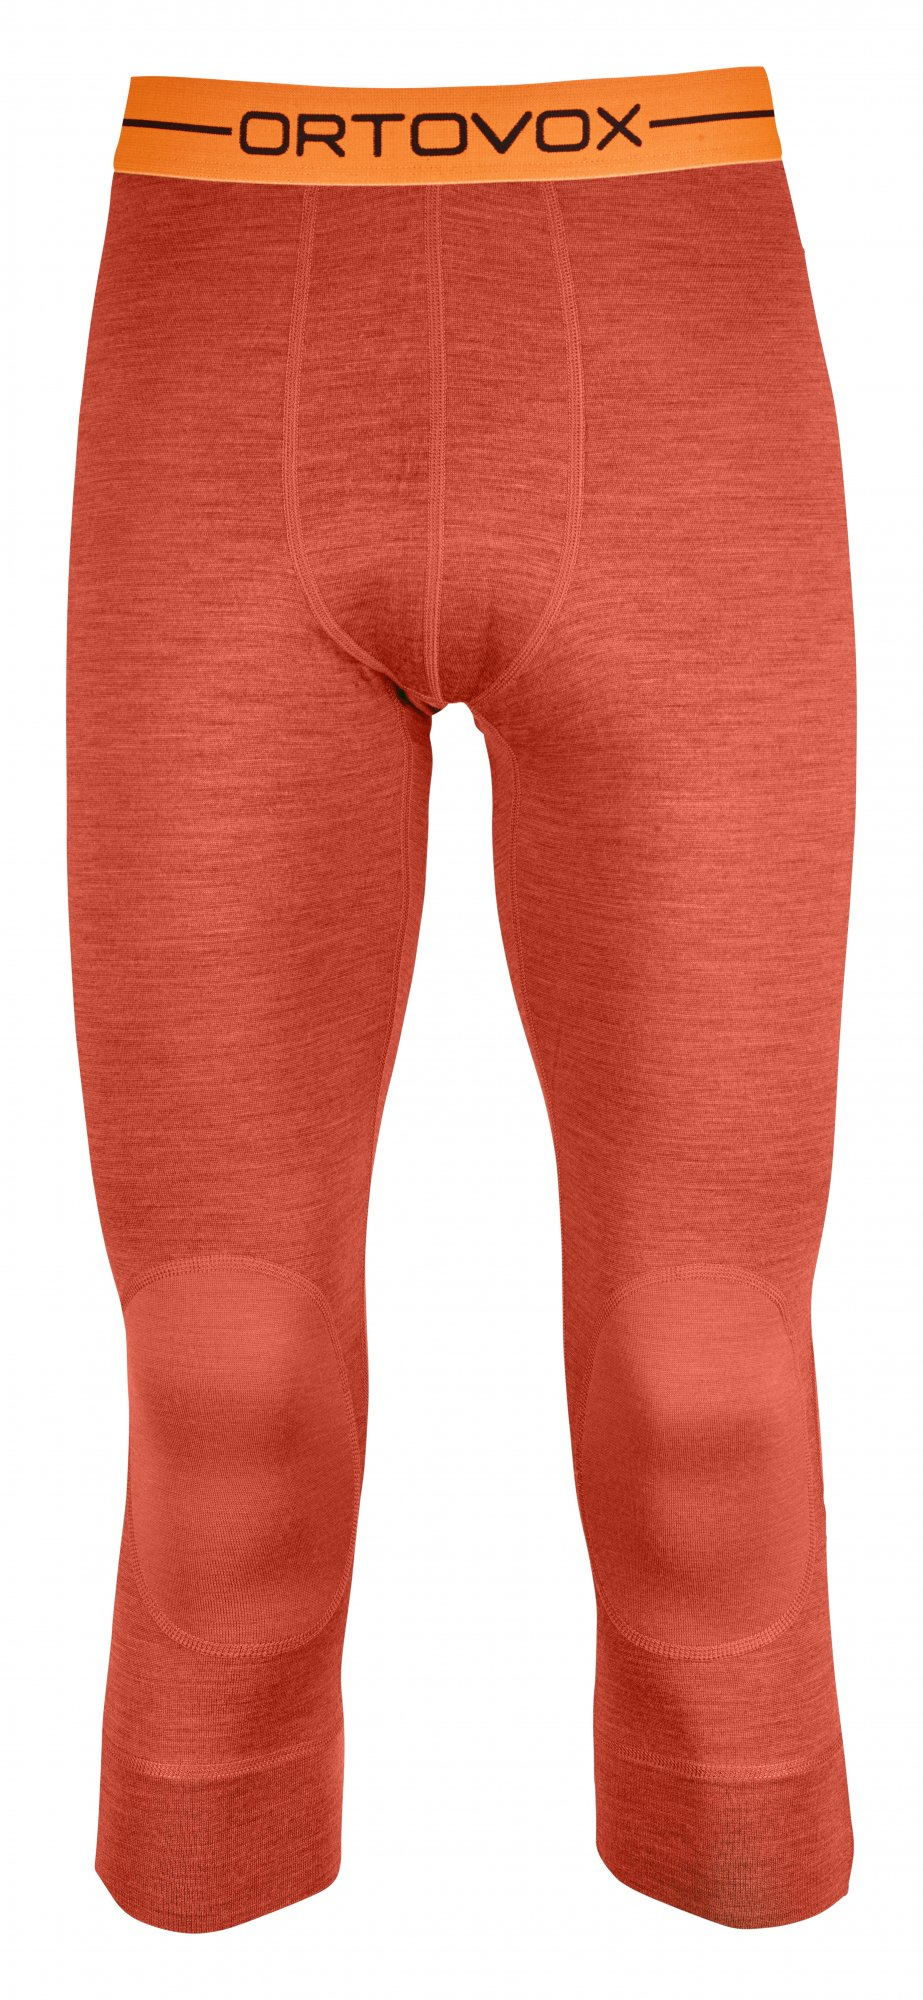 9b5e43246c6 MERINO 185 ROCK N WOOL SHORT Hose 2019 crazy orange blend ...